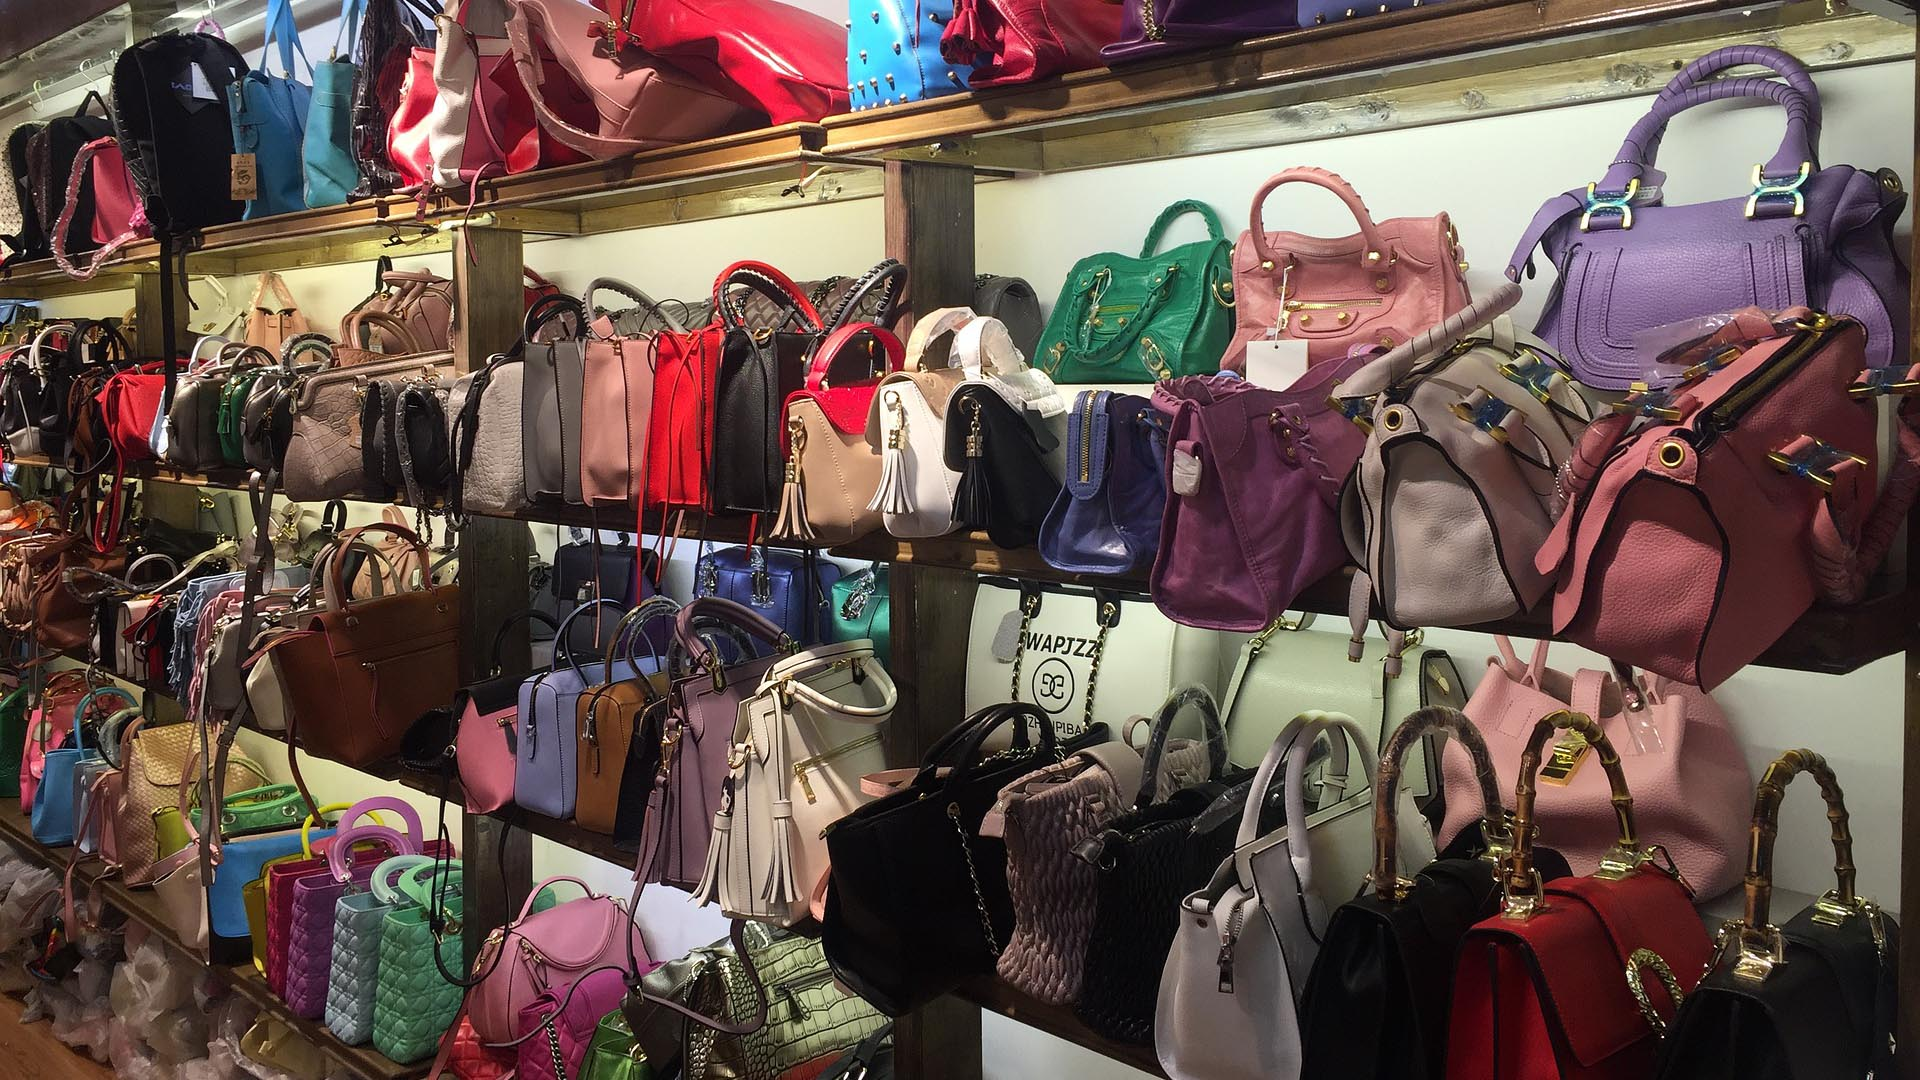 Clothing, Jewelry, Prescription Drugs among America's Most Counterfeited Items